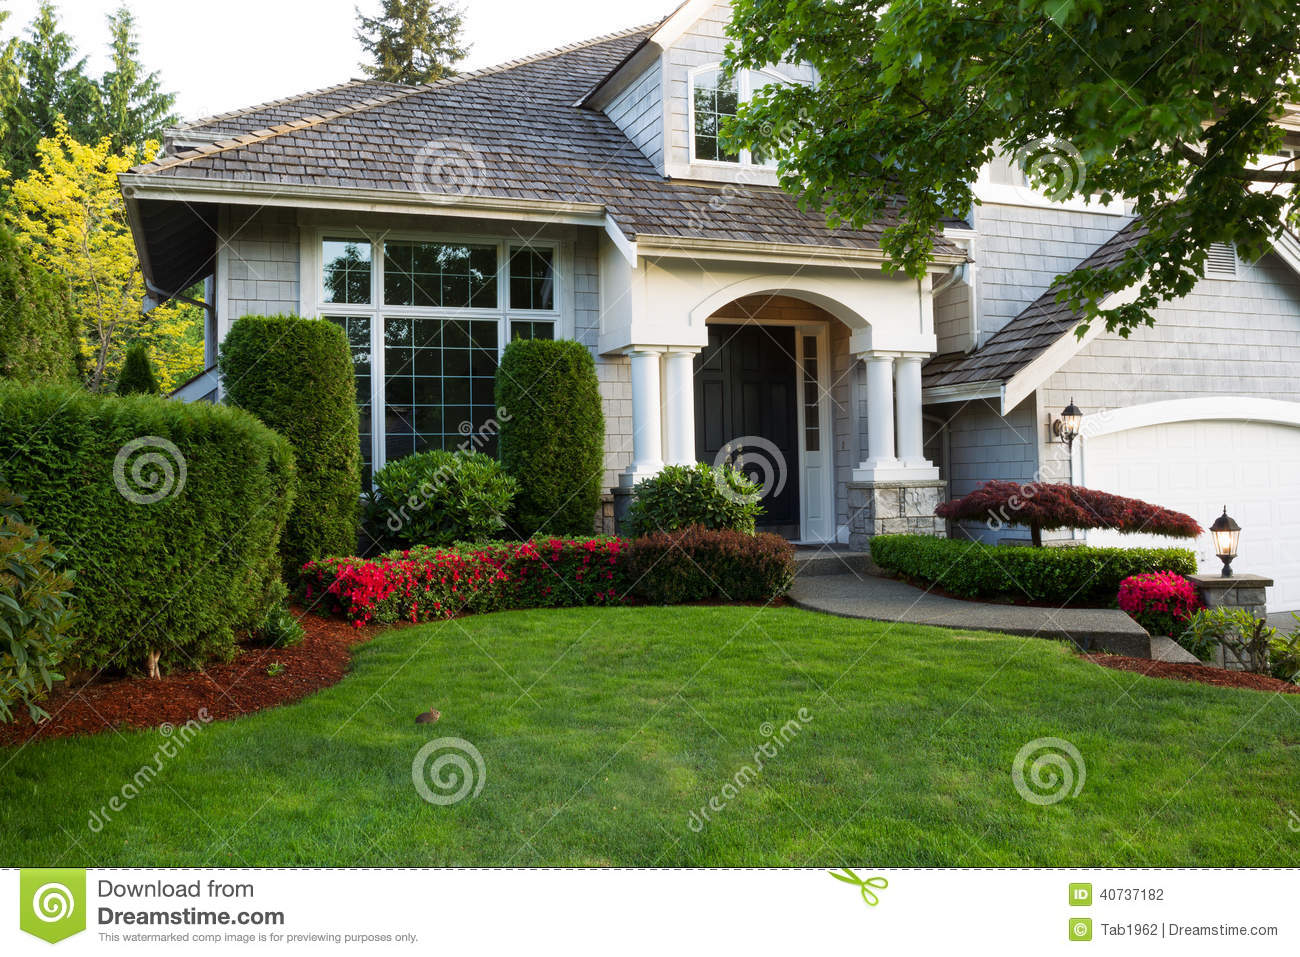 Clean Exterior Home During Late Spring Season Stock Photo Image 40737182